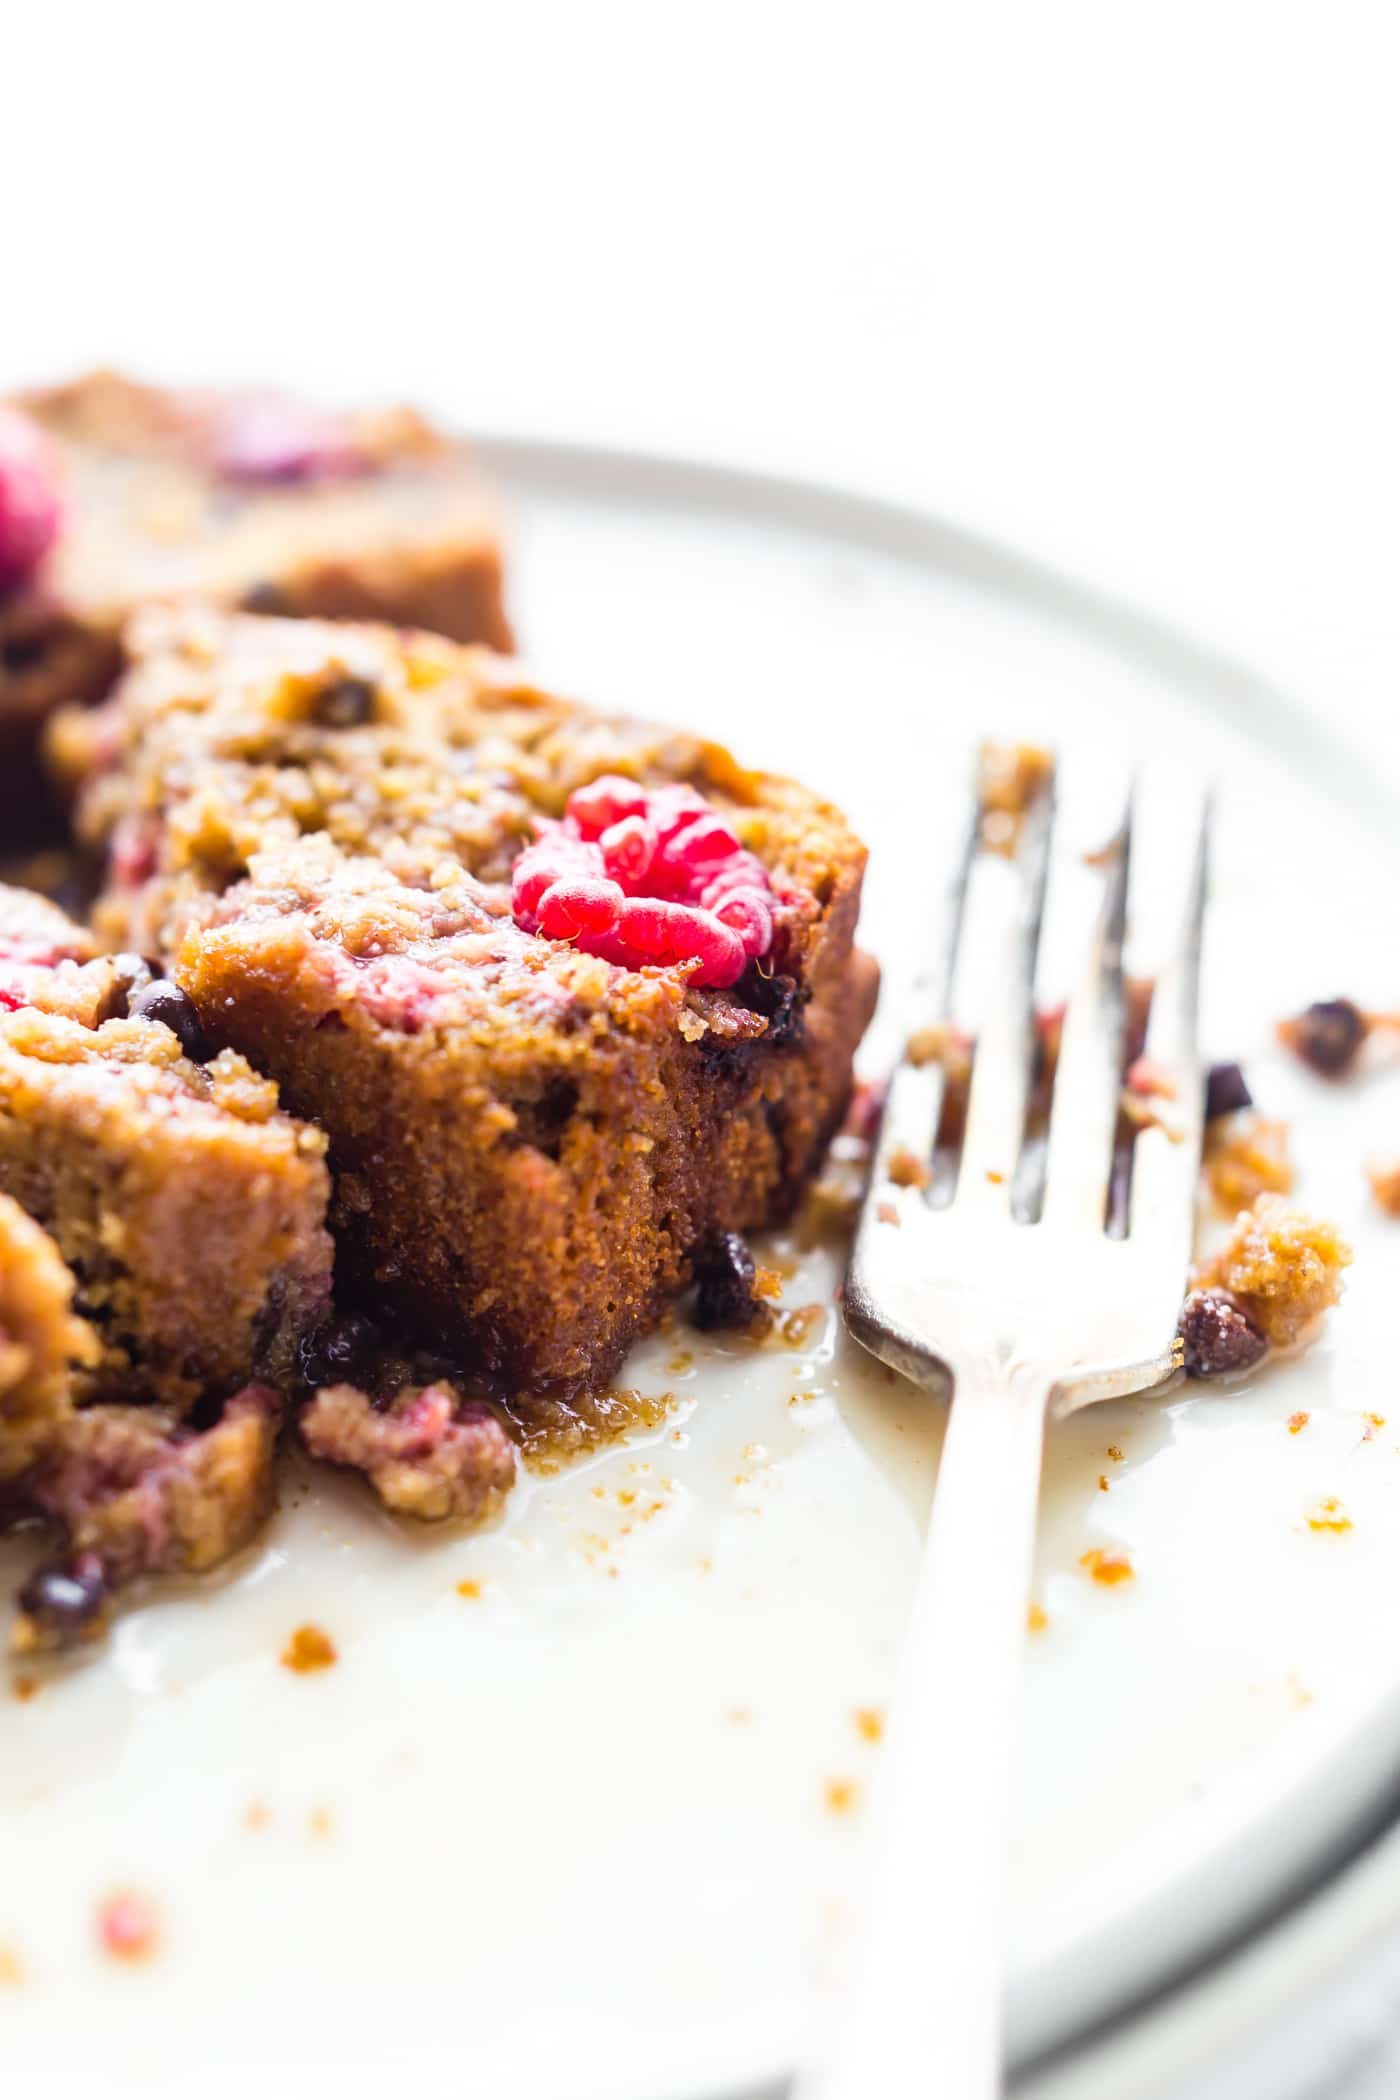 """A Gluten Free Chocolate Raspberry Pancake Bread recipe that's great for brunch or breakfast. It's simple to make with wholesome ingredients. An allergy friendly and vegan friendly """"quick"""" pancake bread recipe with the just the right fruit and chocolate combo. Freezer friendly too!"""